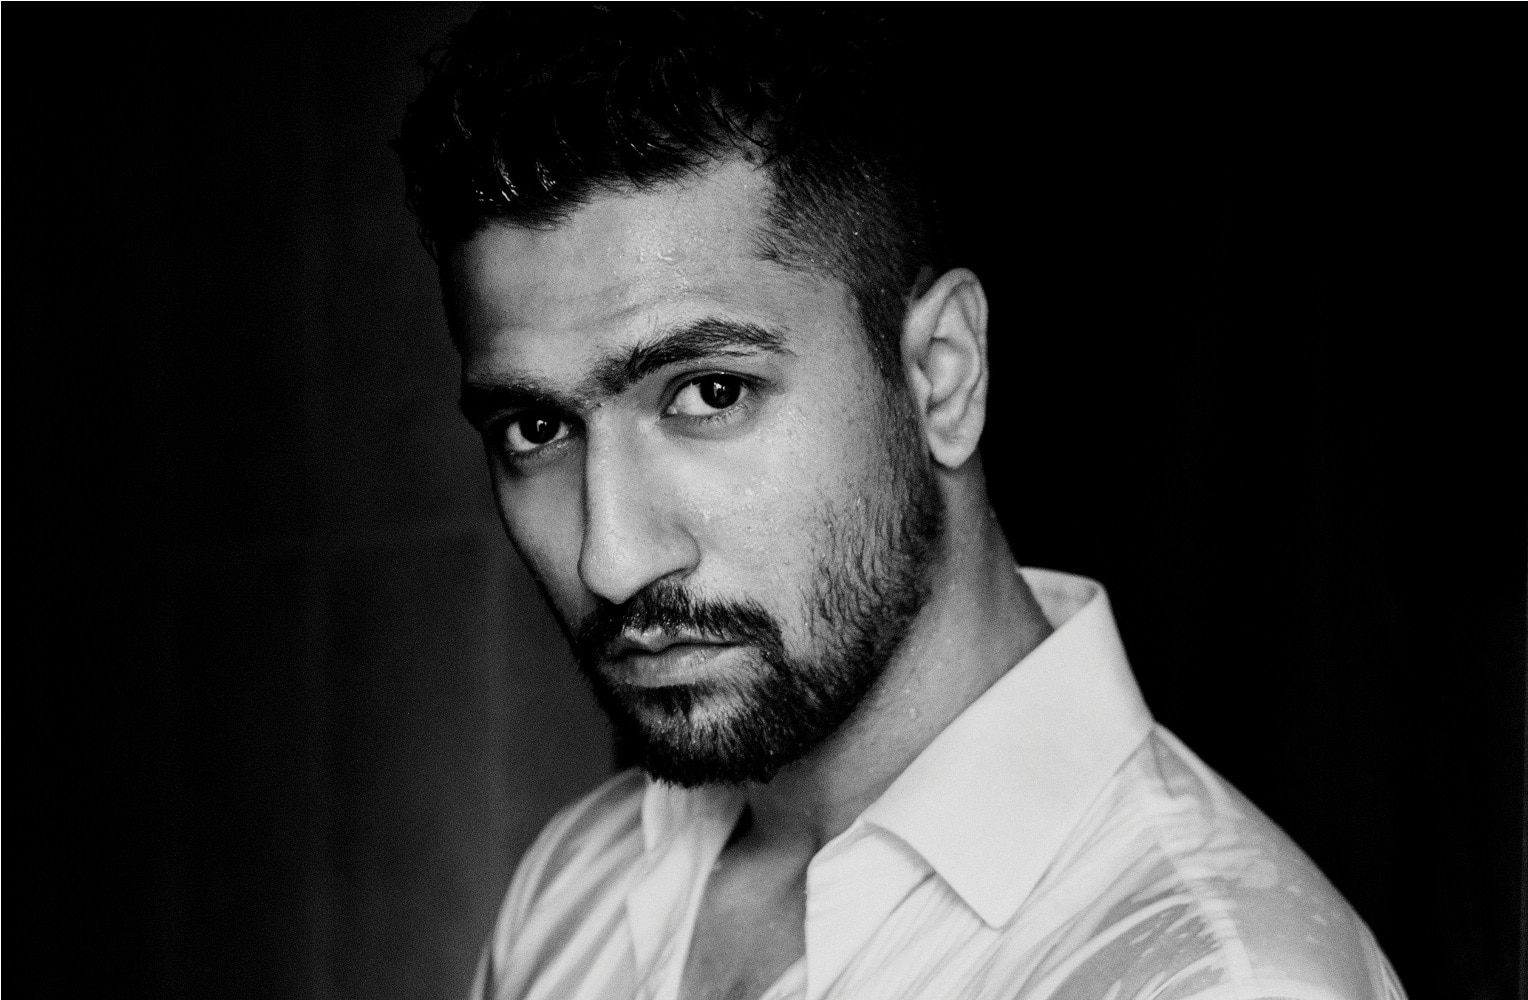 Vicky Kaushal To Star In A Film Based On Uri Attacks?